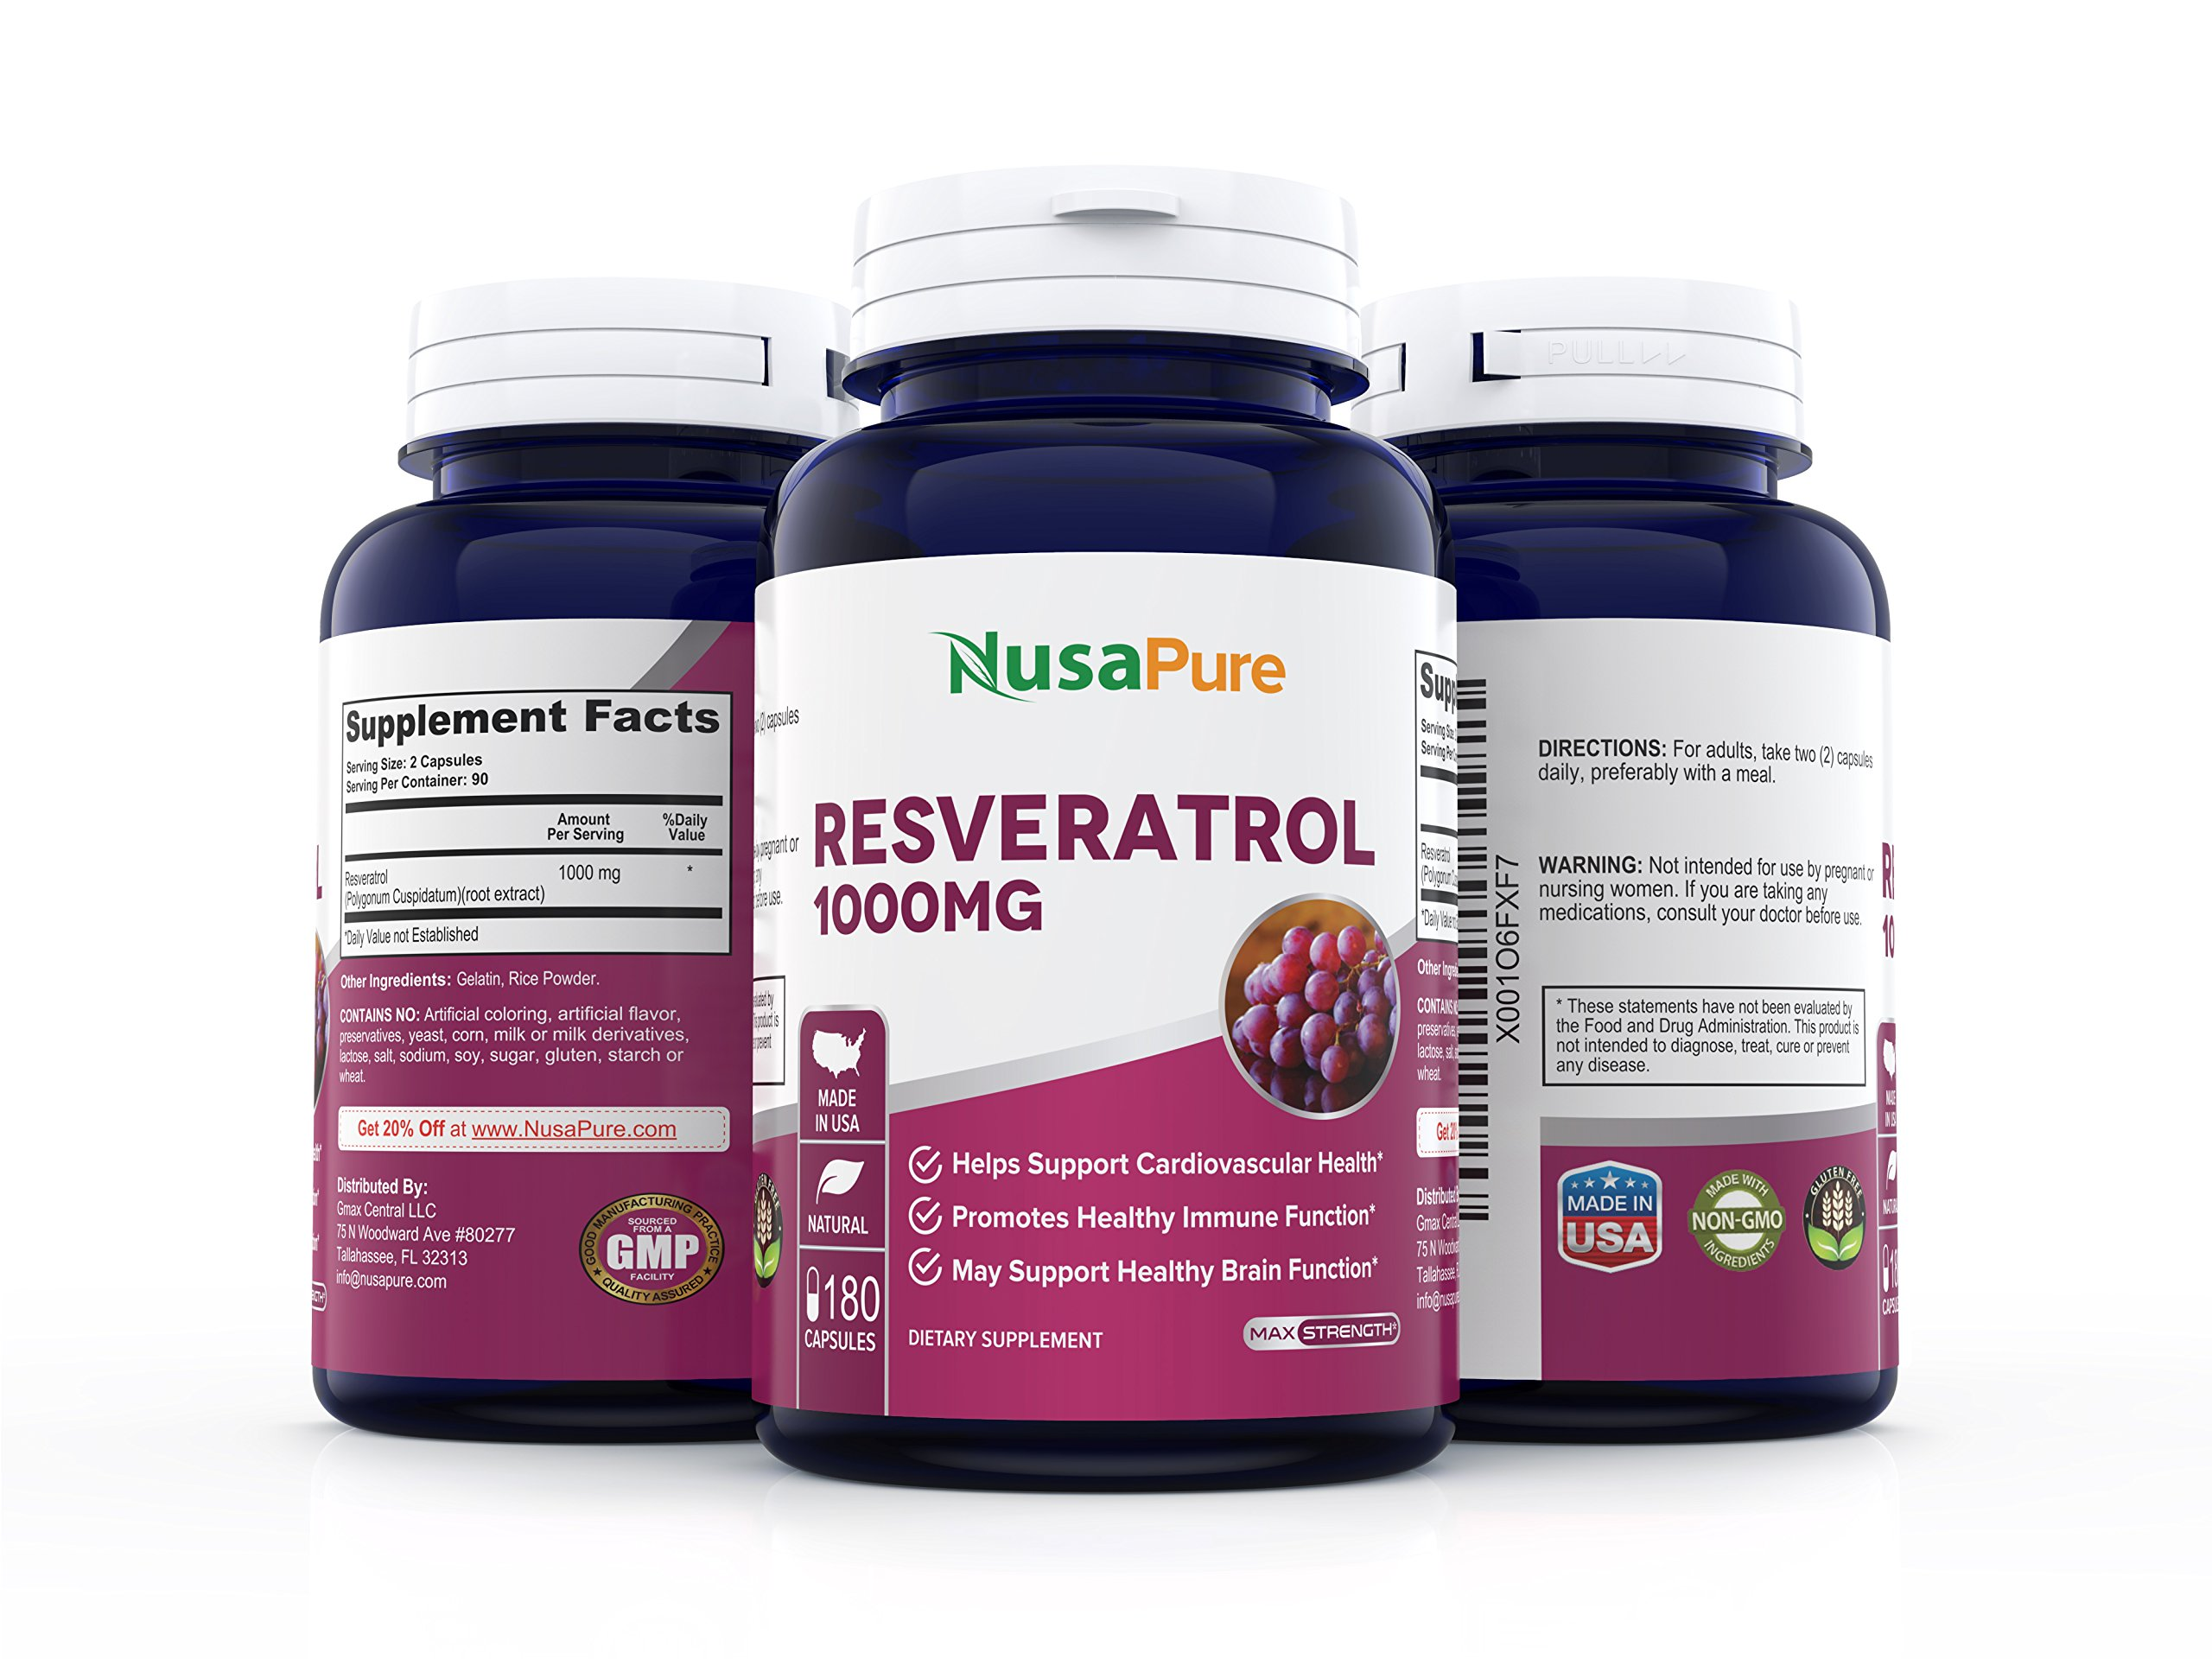 Best Resveratrol 1000mg 180caps (Non-GMO & Gluten Free) Promotes Heart Health and Balances Blood Pressure, Helps Balance Hormones - Proudly Made in USA - 100% Money Back Guarantee! by NusaPure (Image #3)